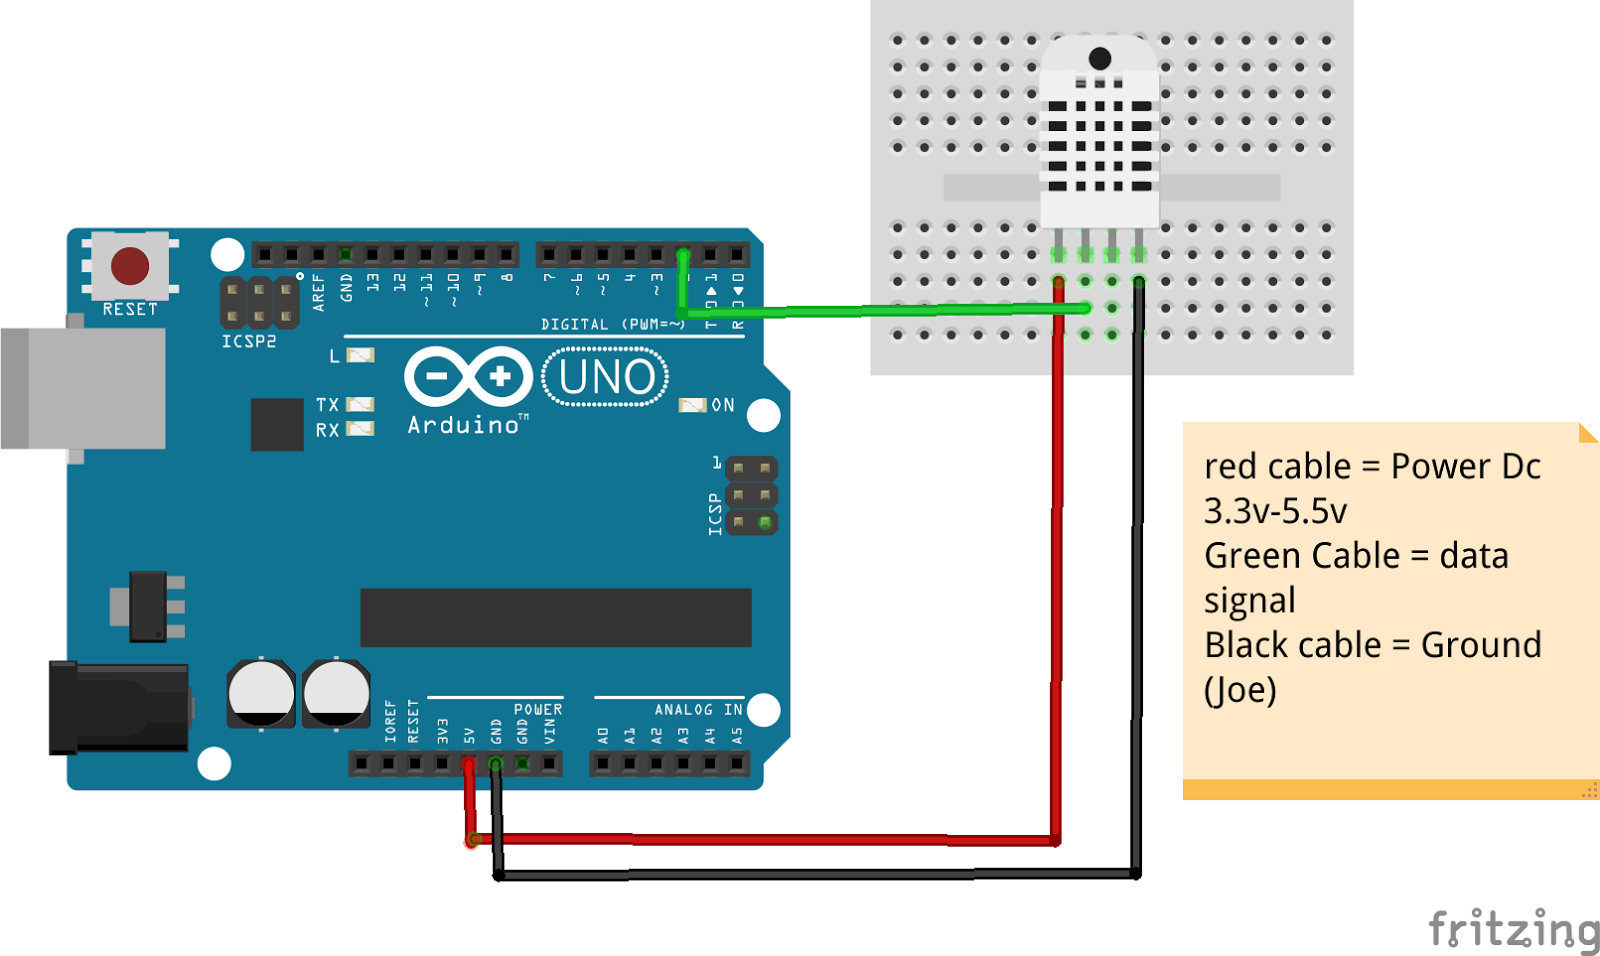 Temperature and humidity sensor dht in arduino uno